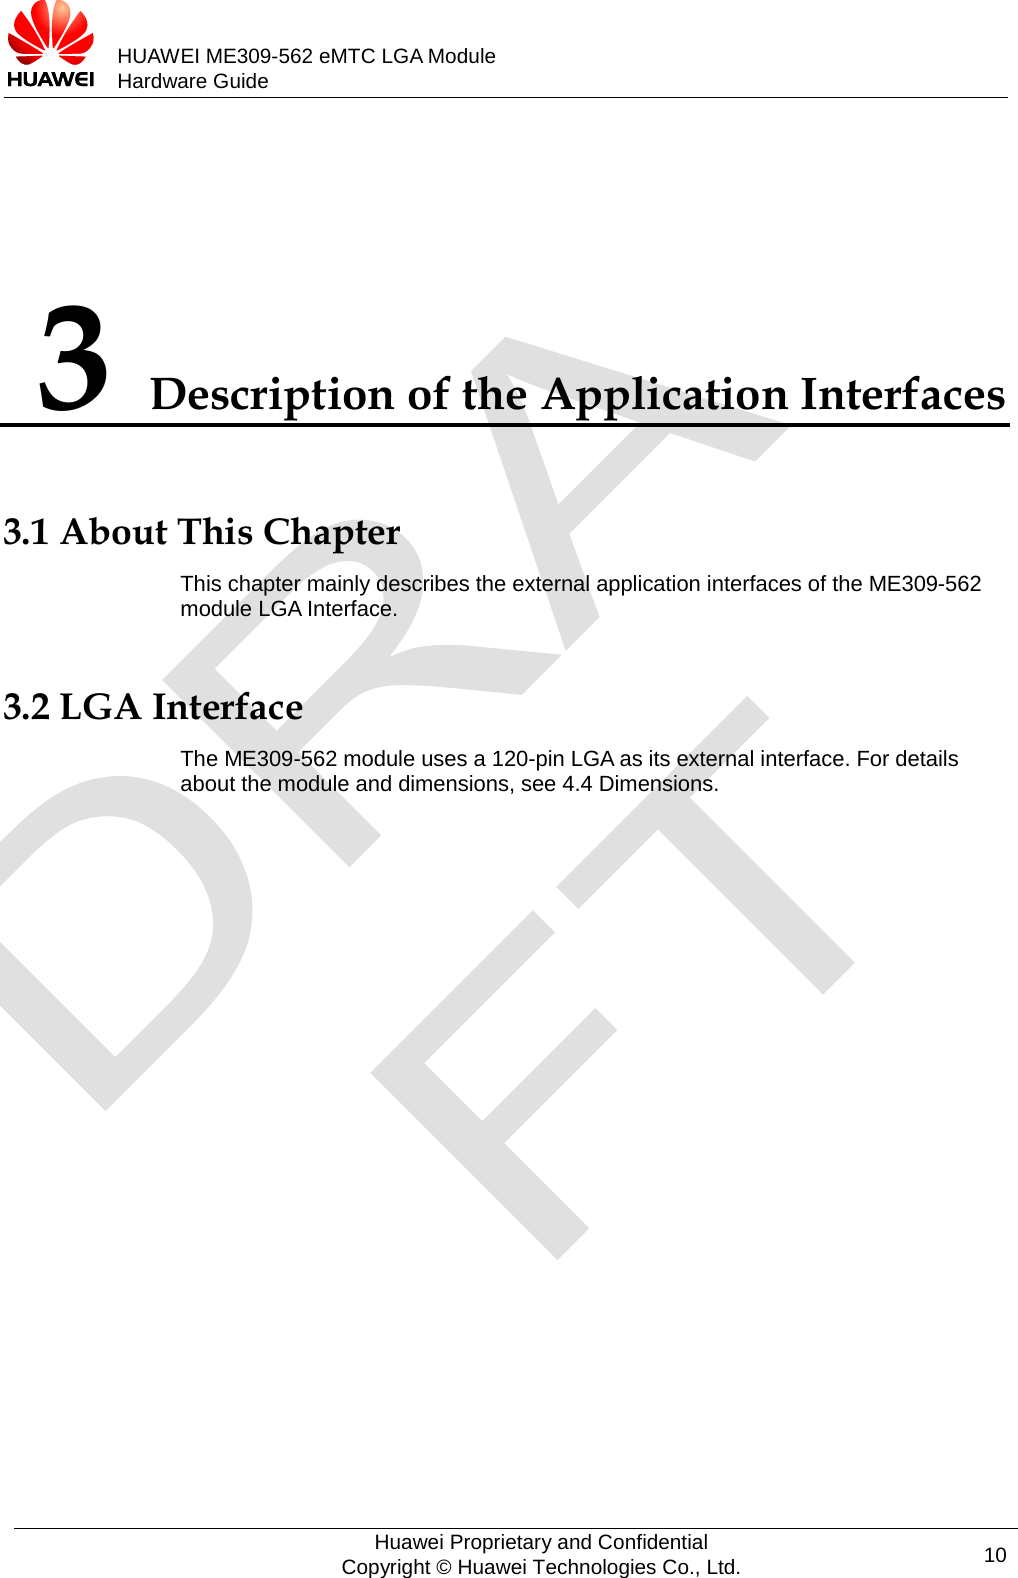 HUAWEI ME309-562 eMTC LGA Module Hardware Guide  3 Description of the Application Interfaces 3.1 About This Chapter This chapter mainly describes the external application interfaces of the ME309-562 module LGA Interface. 3.2 LGA Interface The ME309-562 module uses a 120-pin LGA as its external interface. For details about the module and dimensions, see 4.4 Dimensions.  Huawei Proprietary and Confidential Copyright © Huawei Technologies Co., Ltd. 10